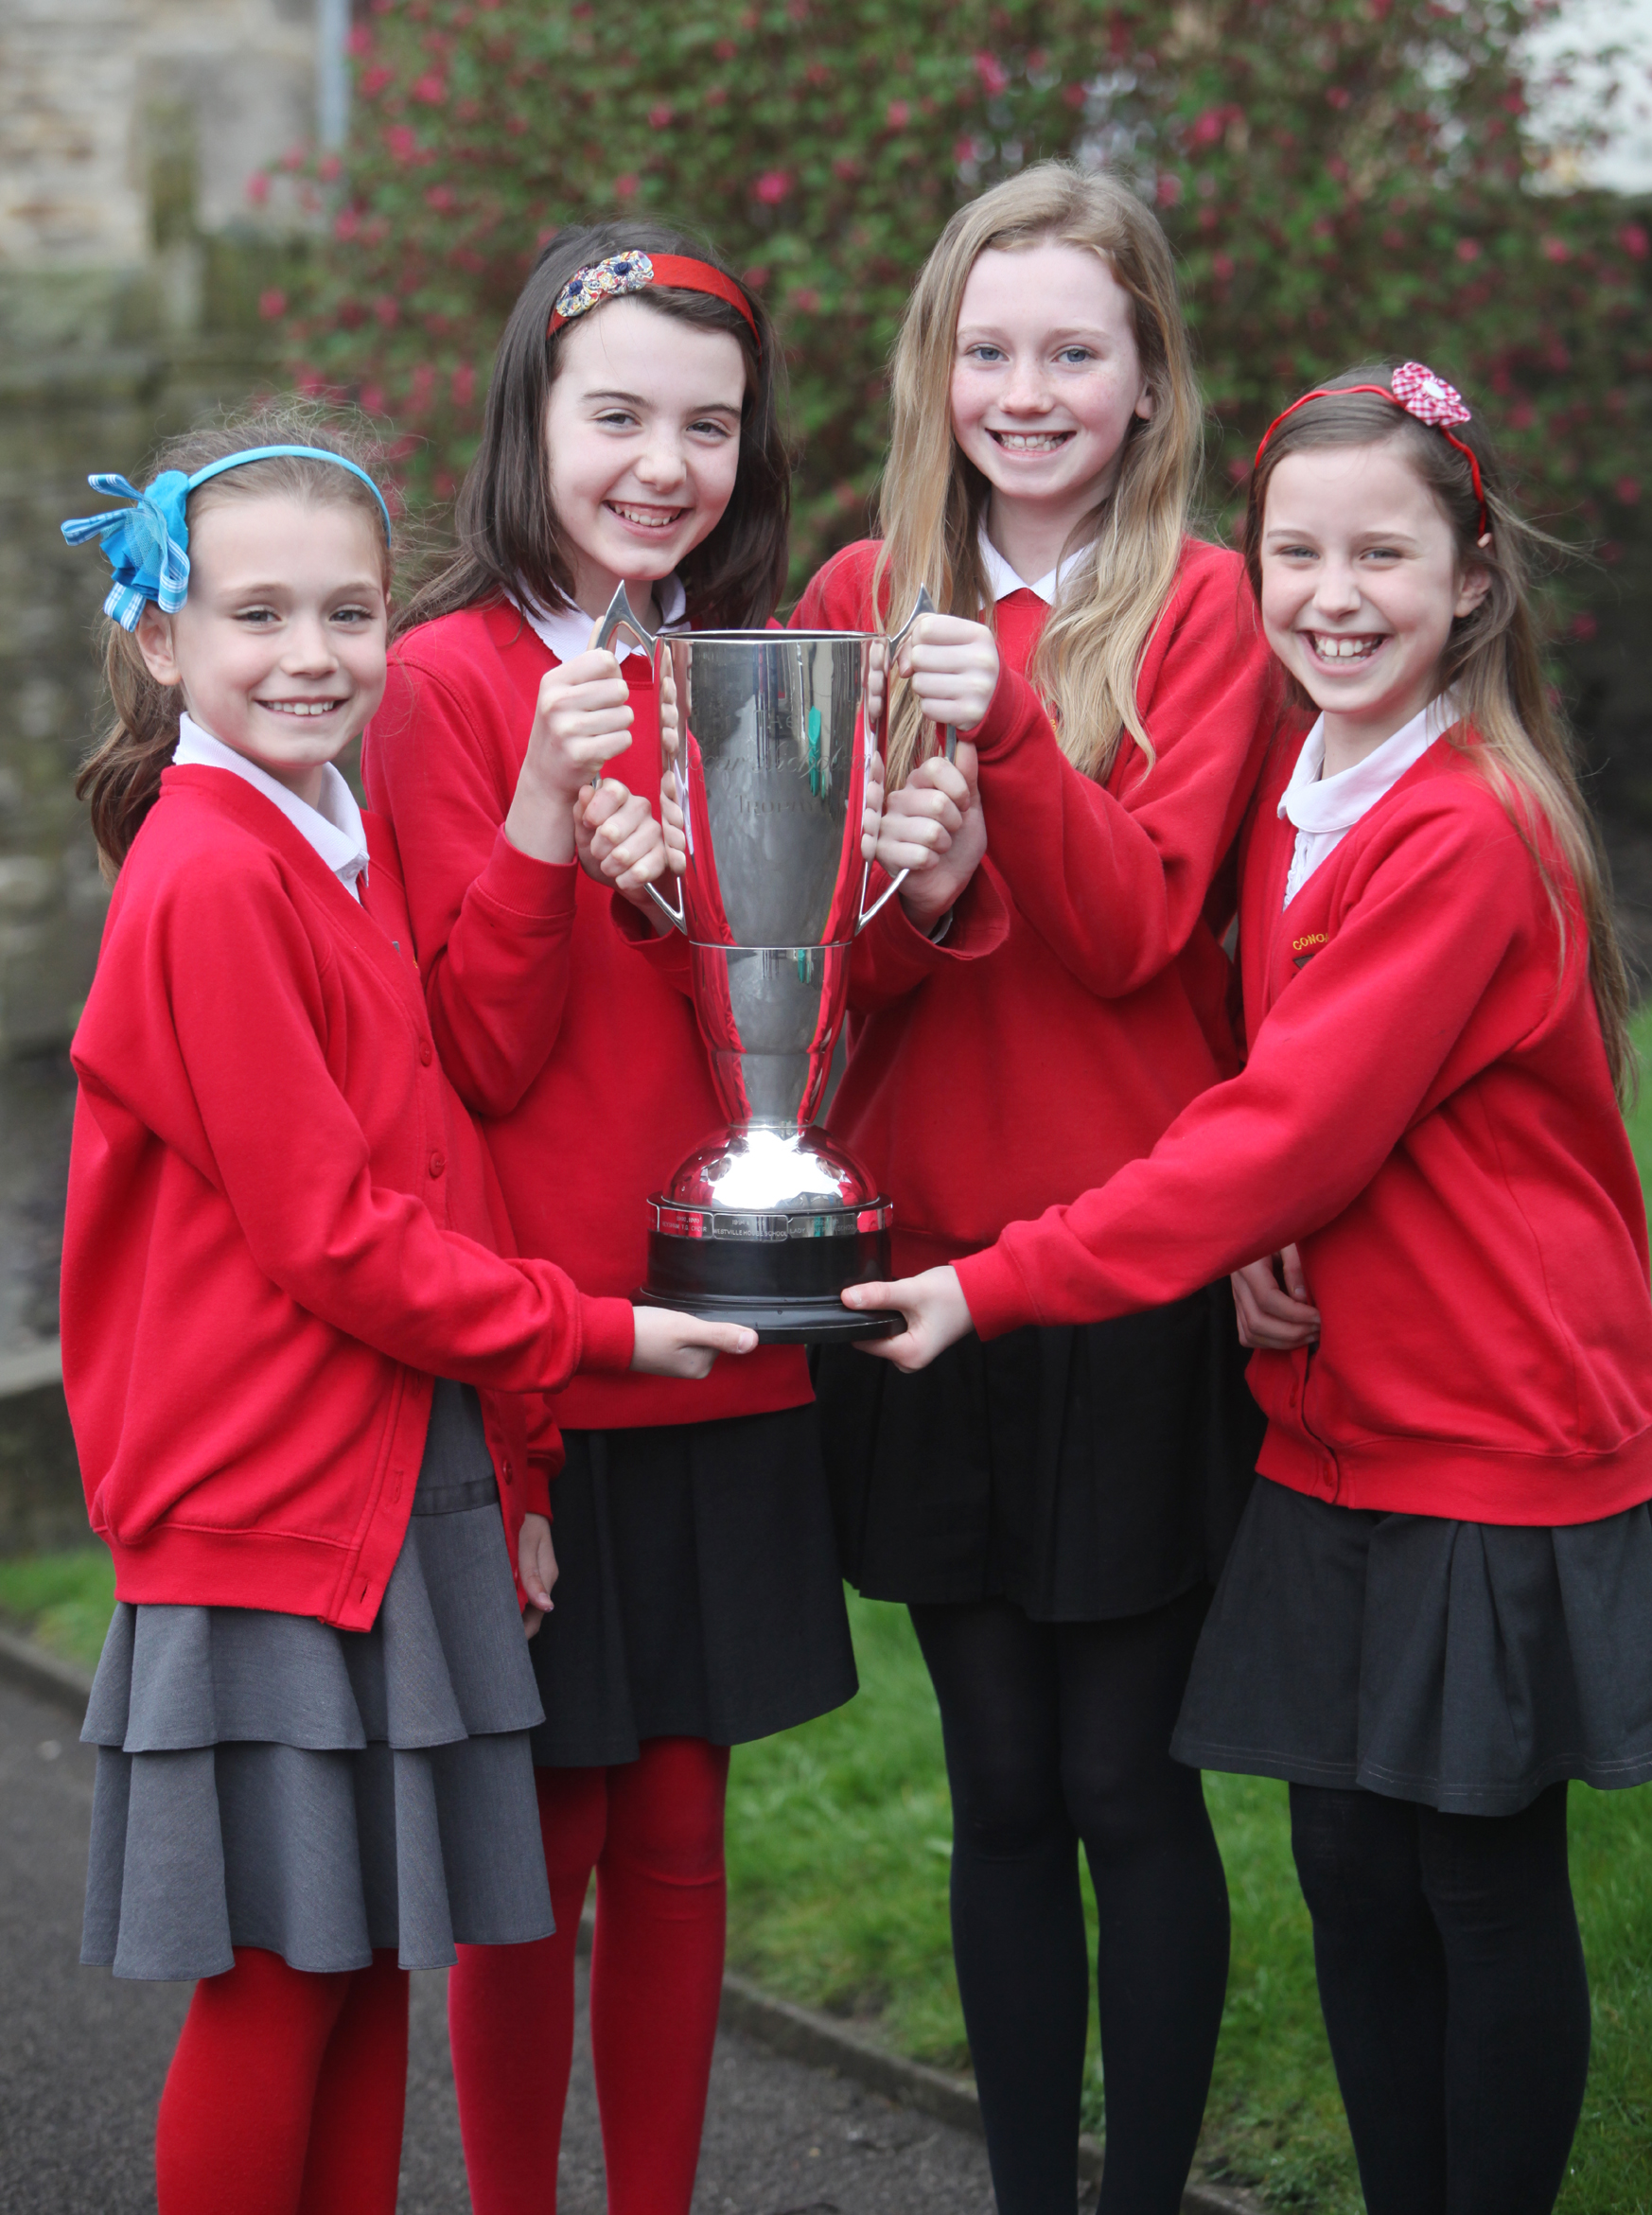 FLAUTISTS: Cononley Primary School's Faith Ramsden, Ysabel Ackroyd, Amy Fidler and Luby Wilson